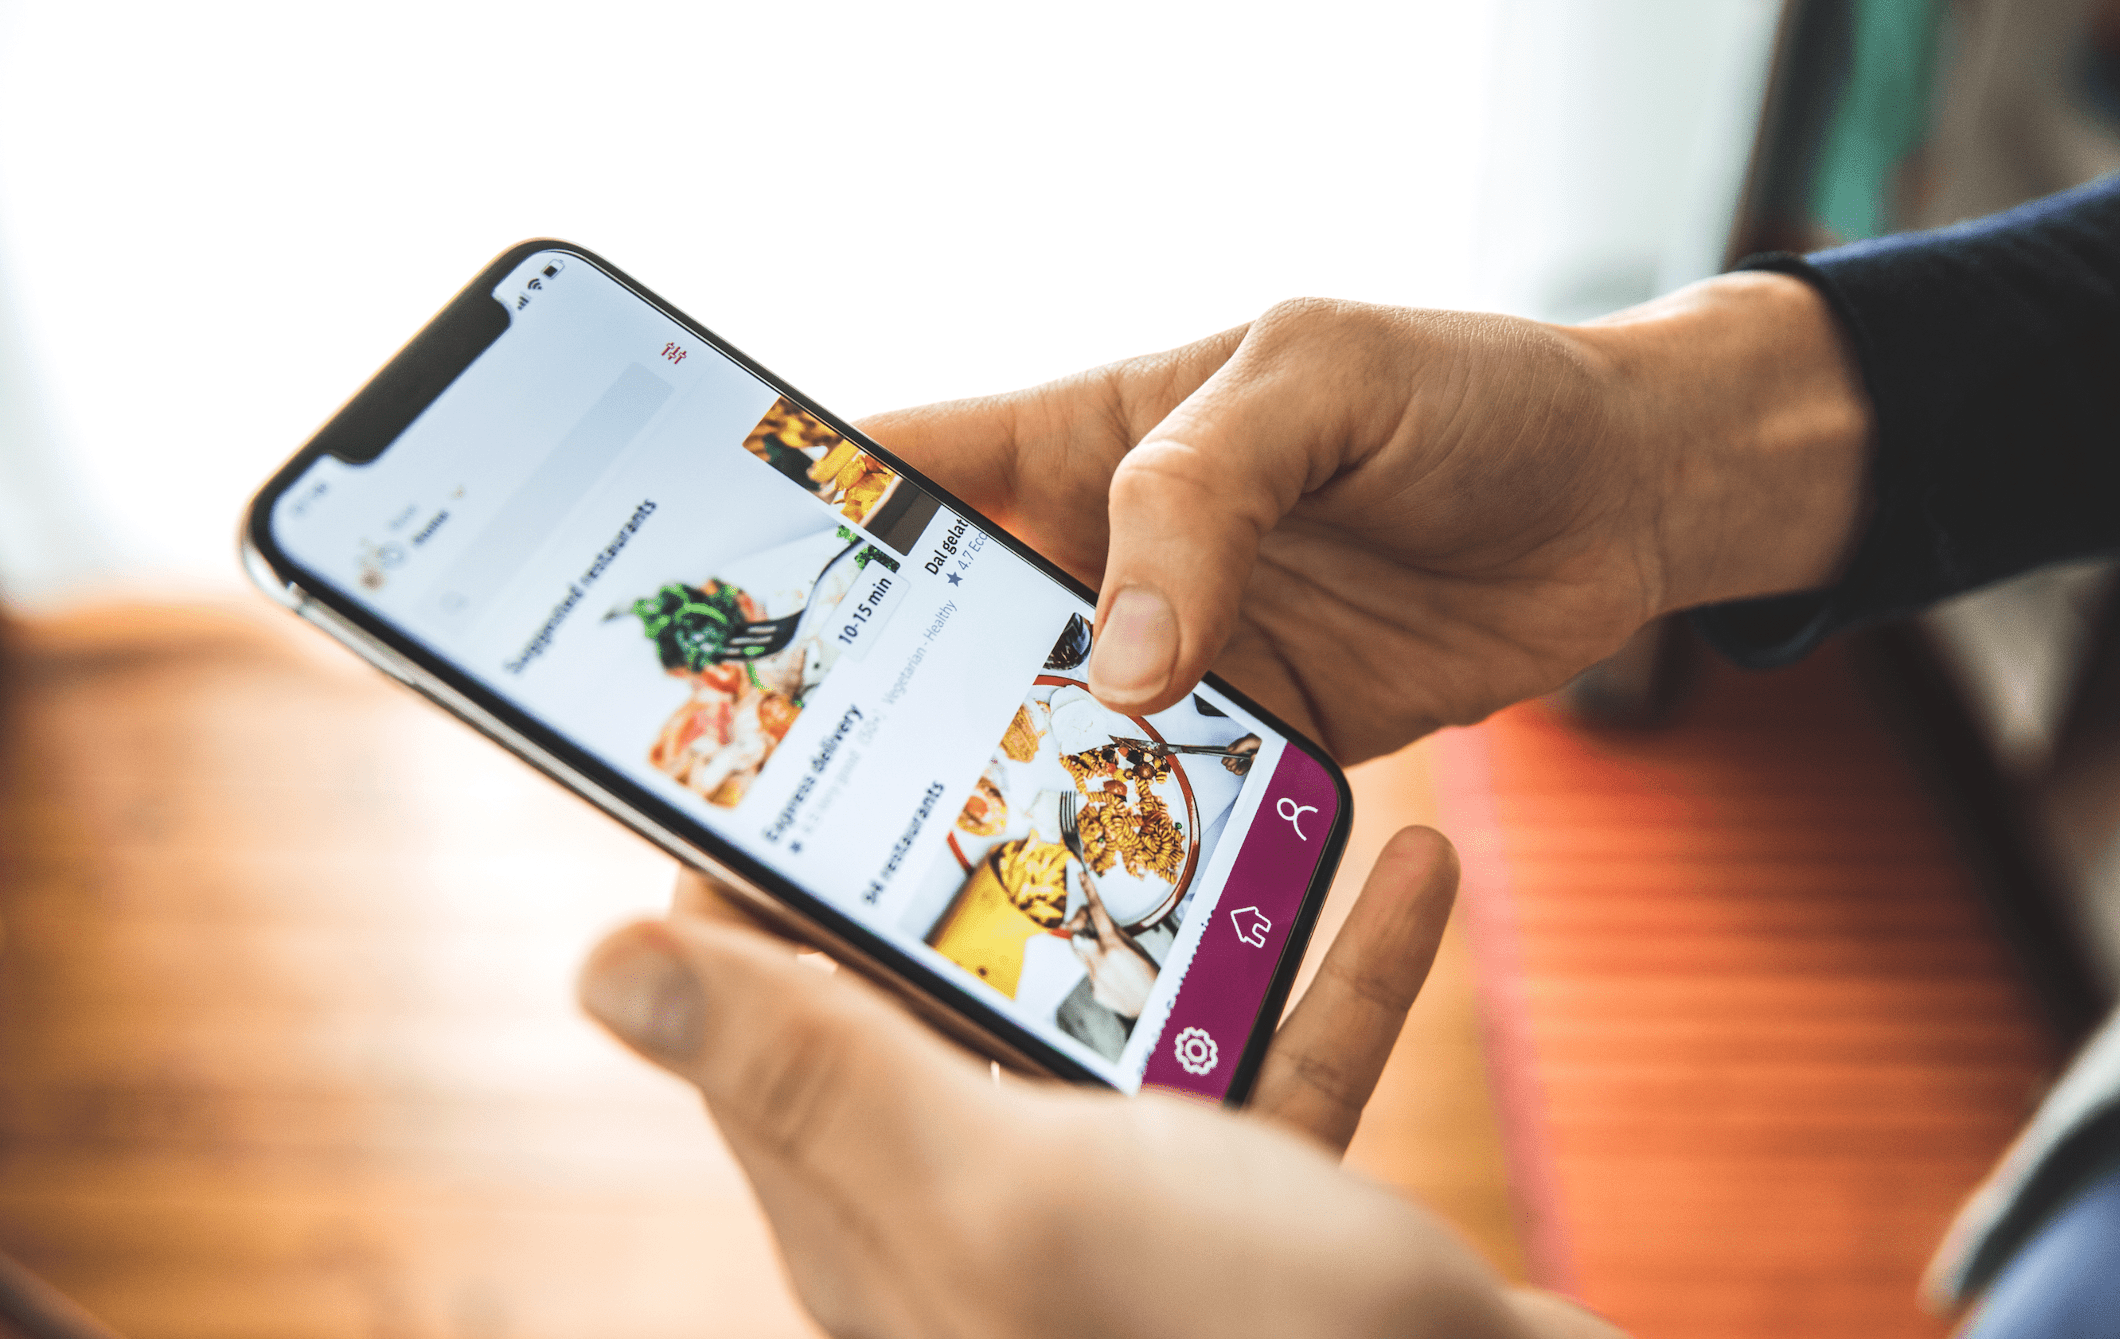 Closeup photo of the smartphone in hands. The phone screen is displaying a restaurant ecommerce website